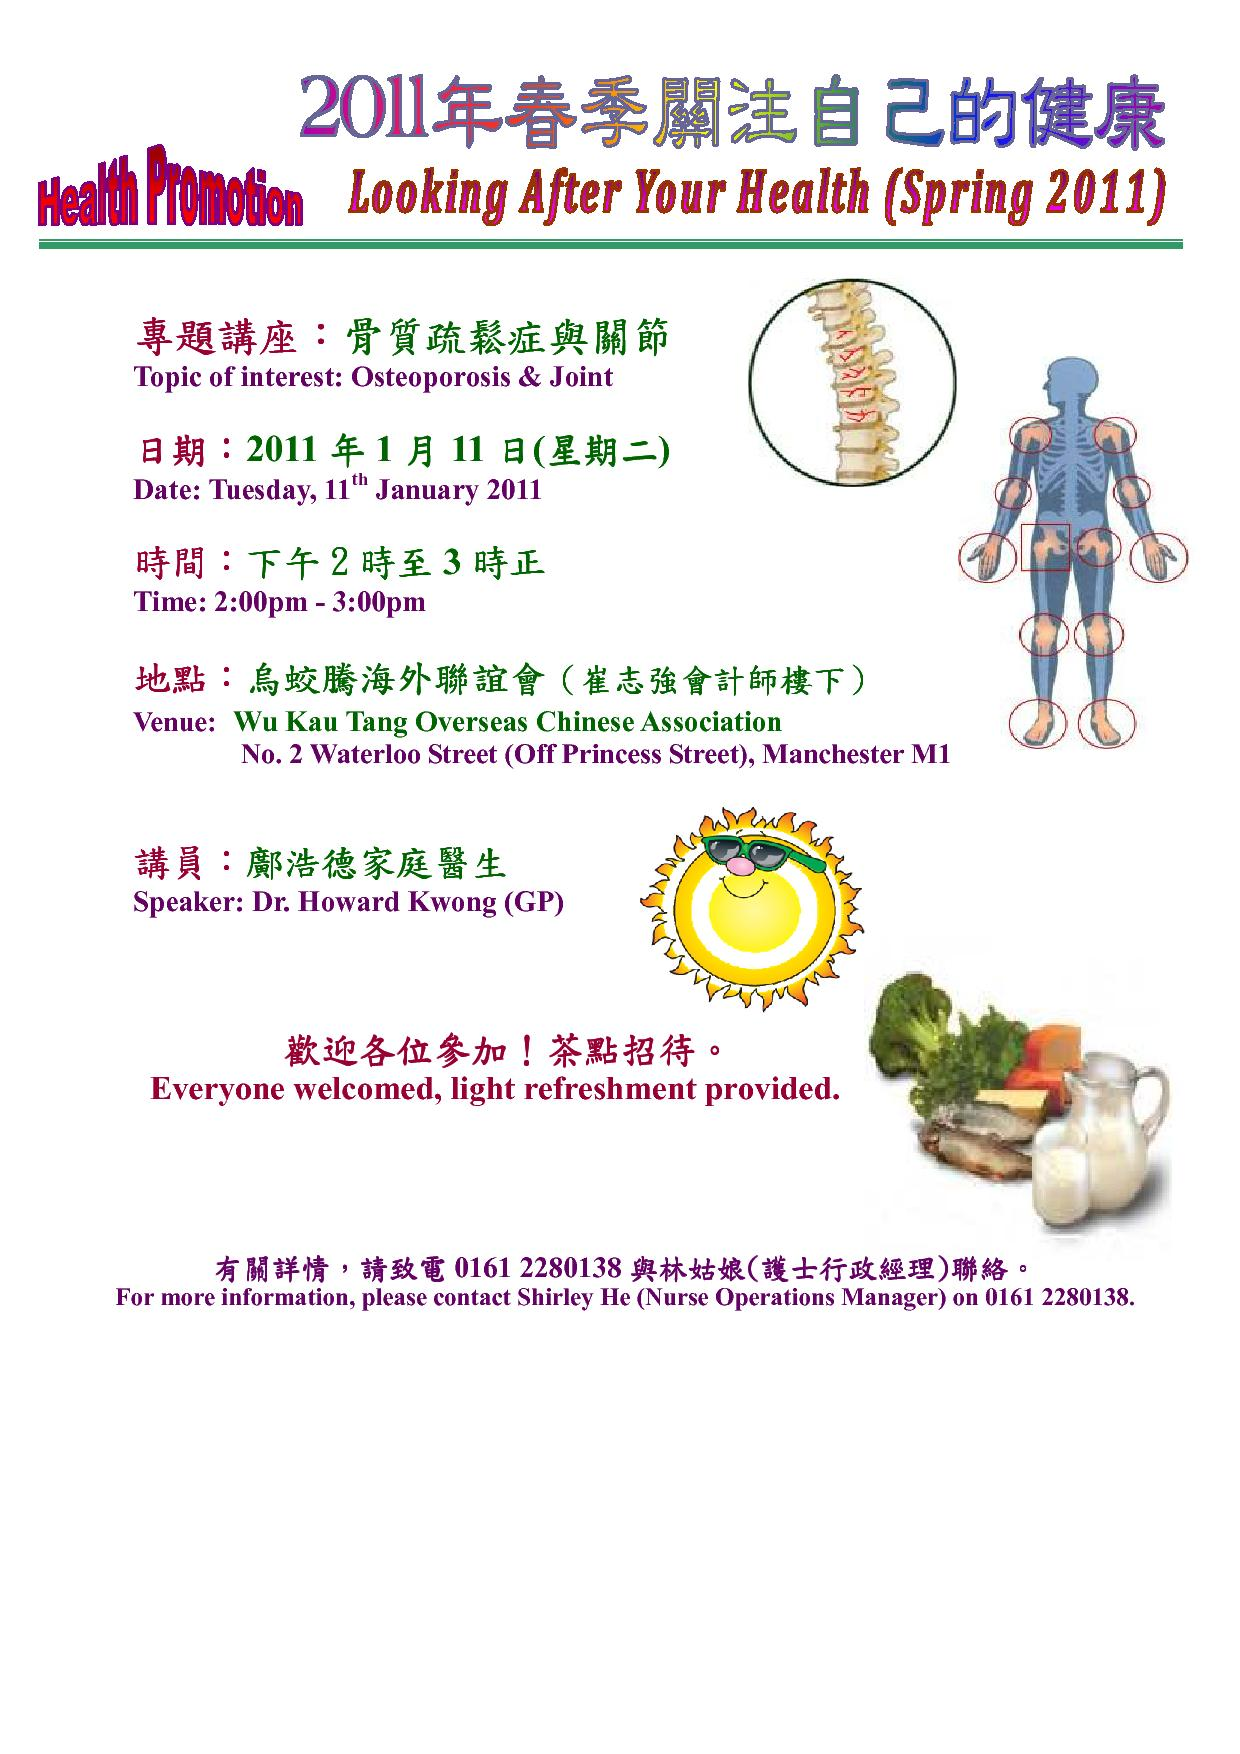 Osteoporosis & Joints